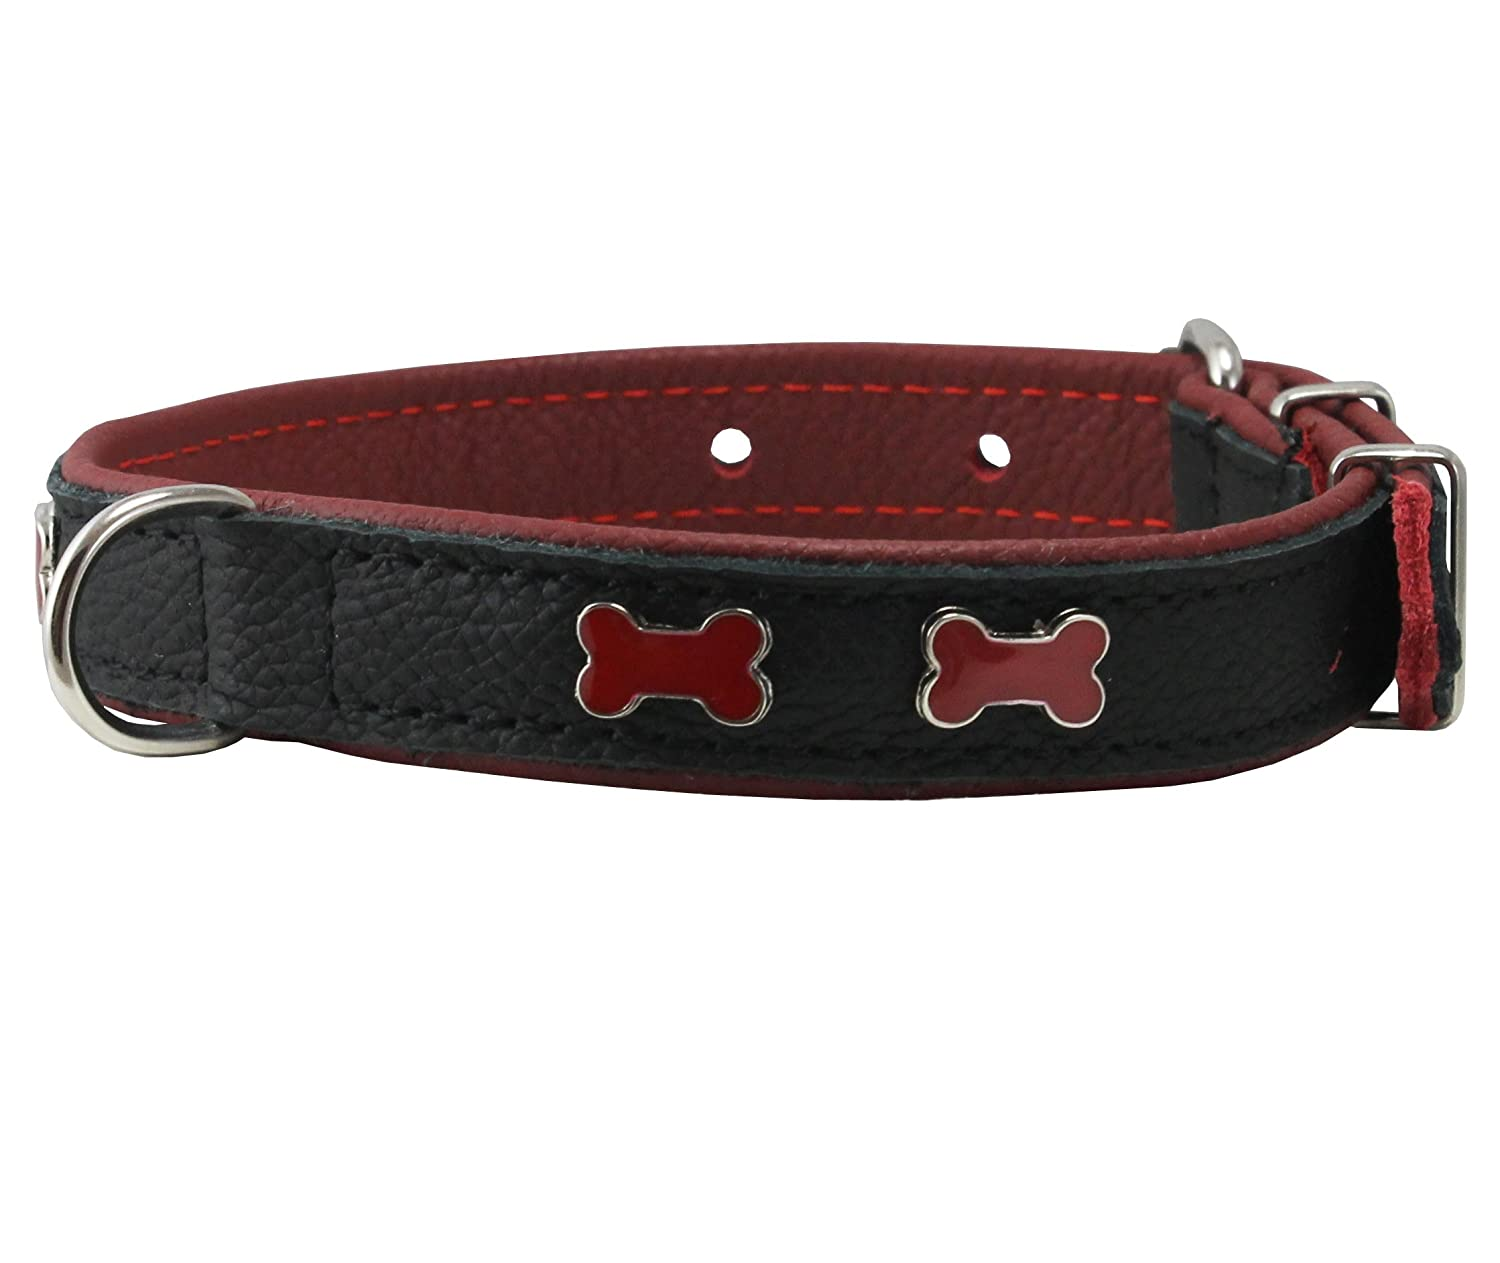 Genuine High Quality Black Leather Metal Bone Studs Soft Black Leather Padded Dog Collar 3 4  Wide. Fits 10 -14  Neck.